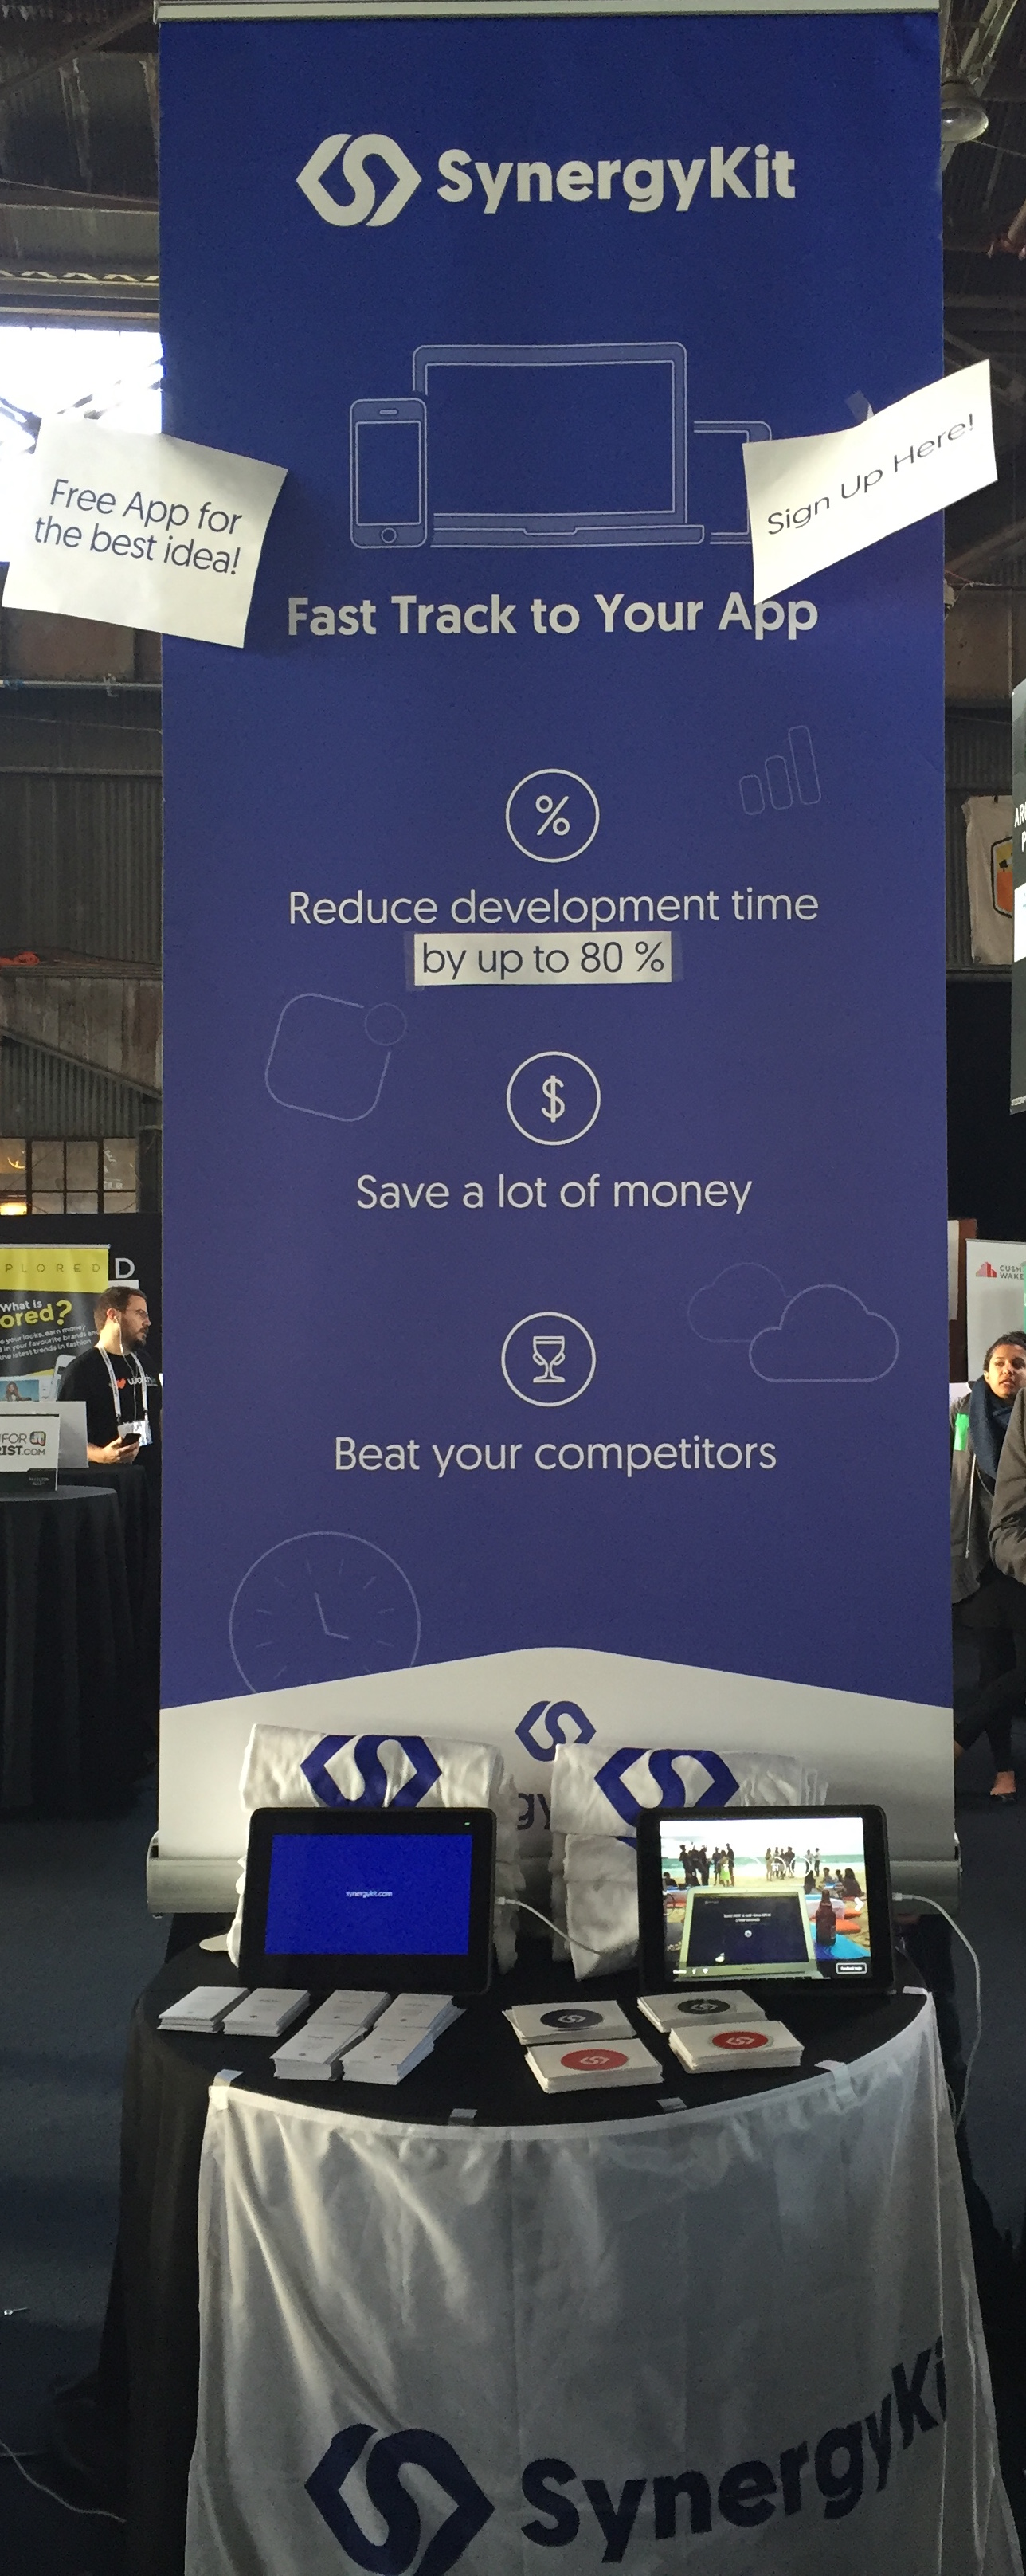 Booth at TechCrunch Disrupt